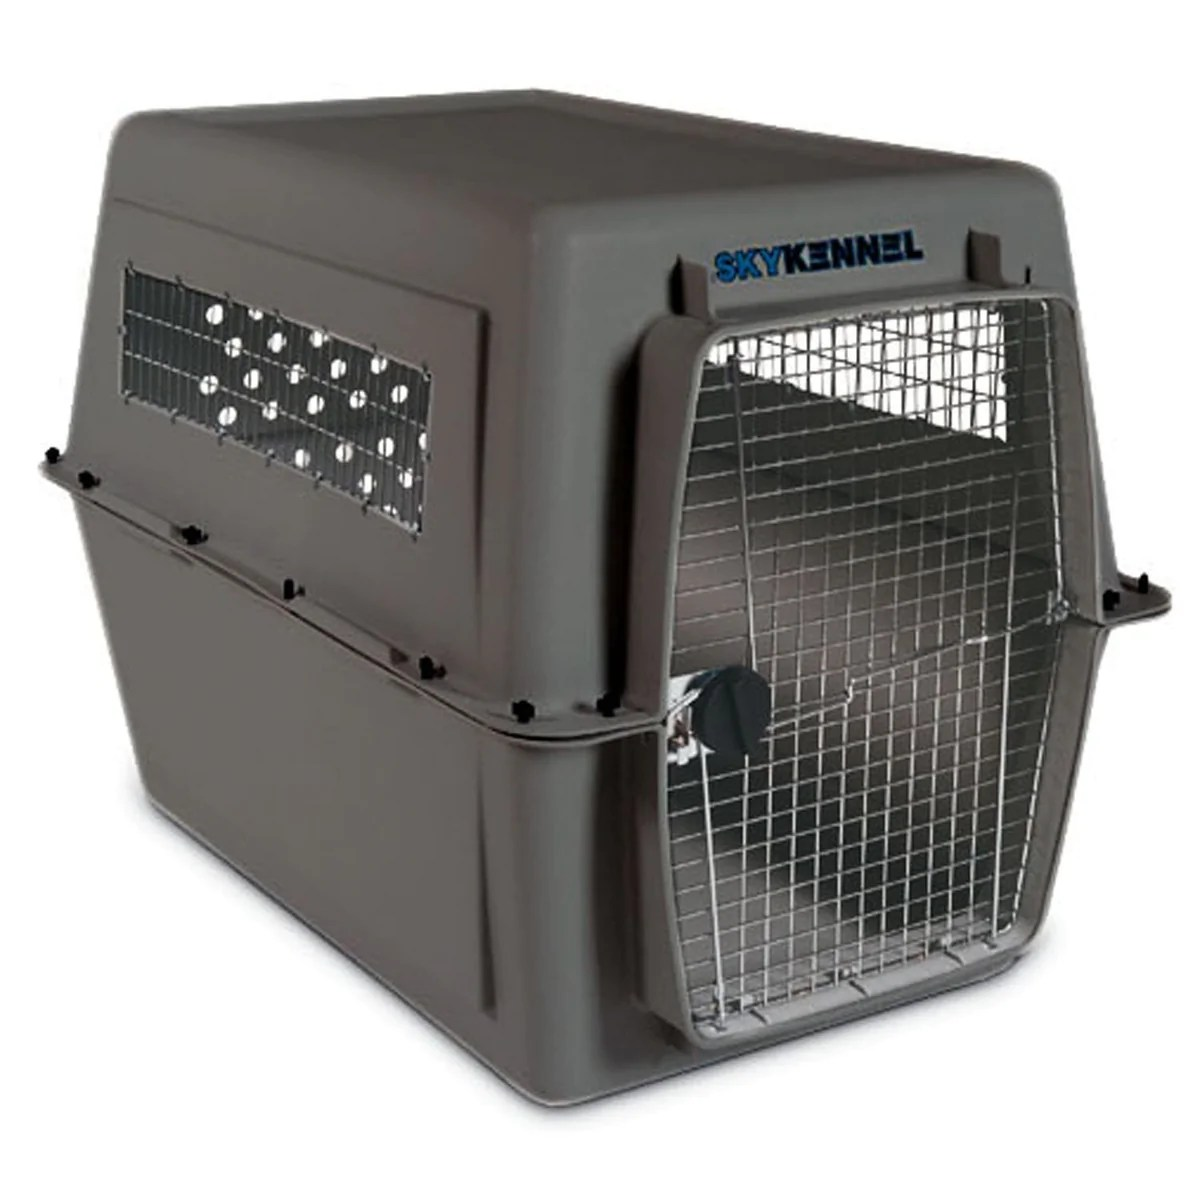 Giant Sky Kennel Dog Crate